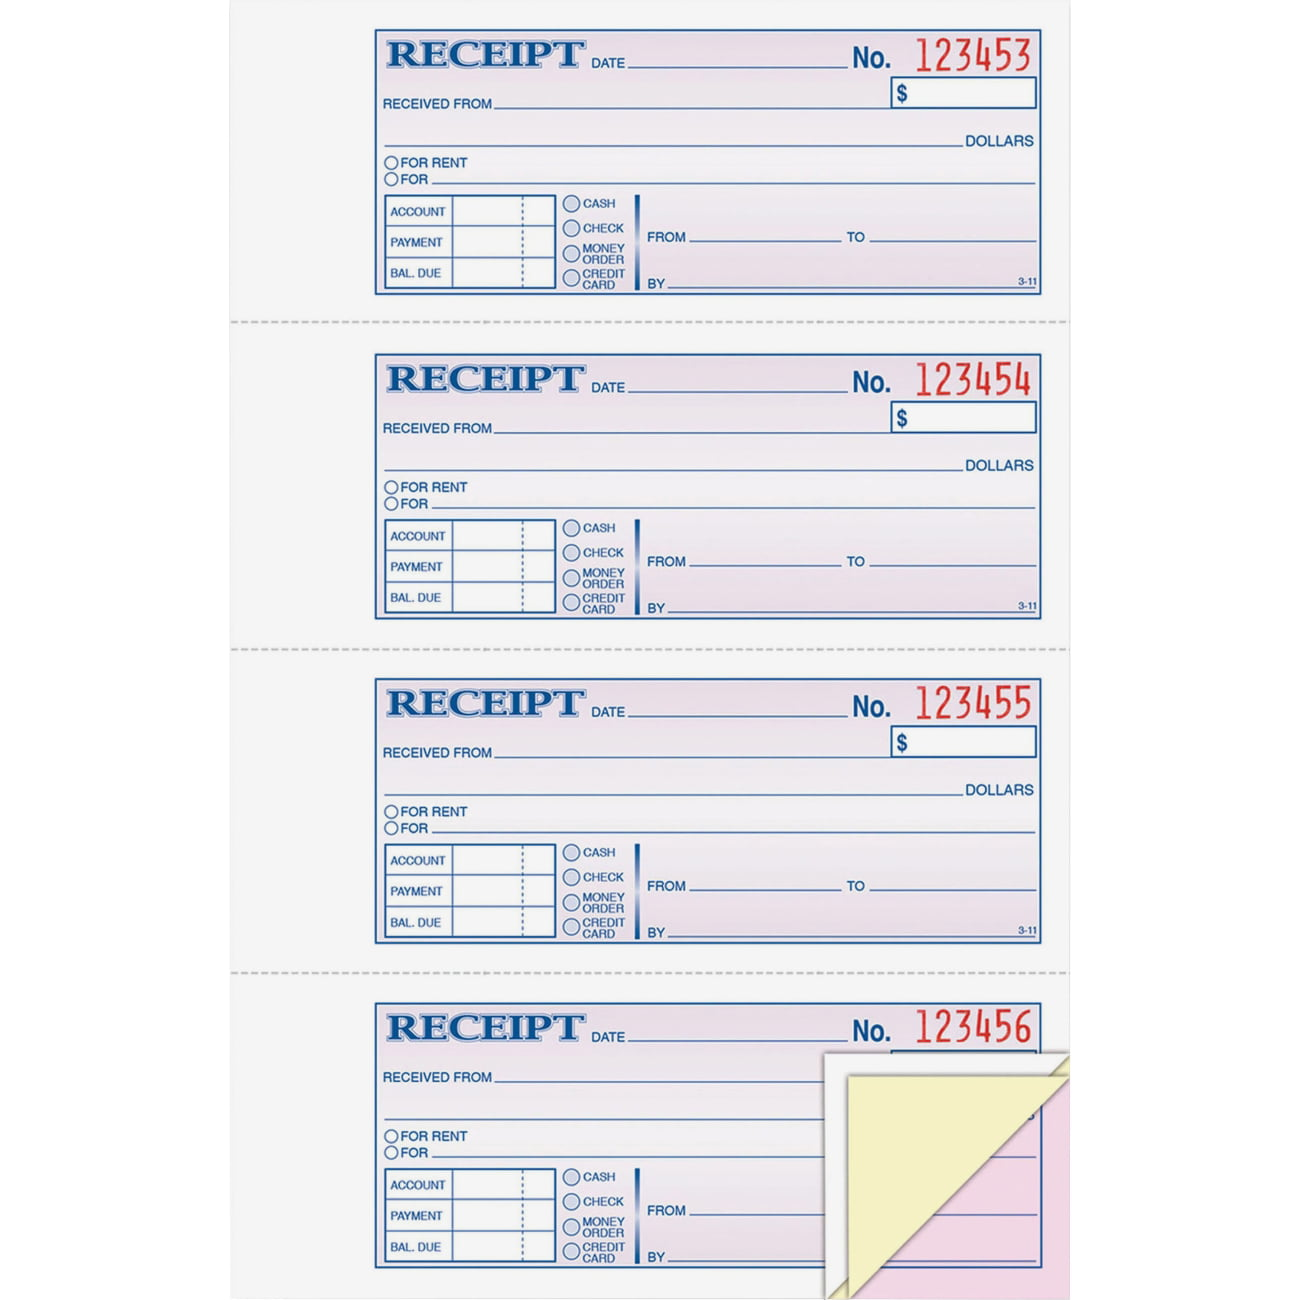 Adams Tc1182 Tape Bound Money/rent Receipt Book   100 Sheet[s]   Tape Bound    3 Part   Carbonless   2.75  Printable Receipt Book